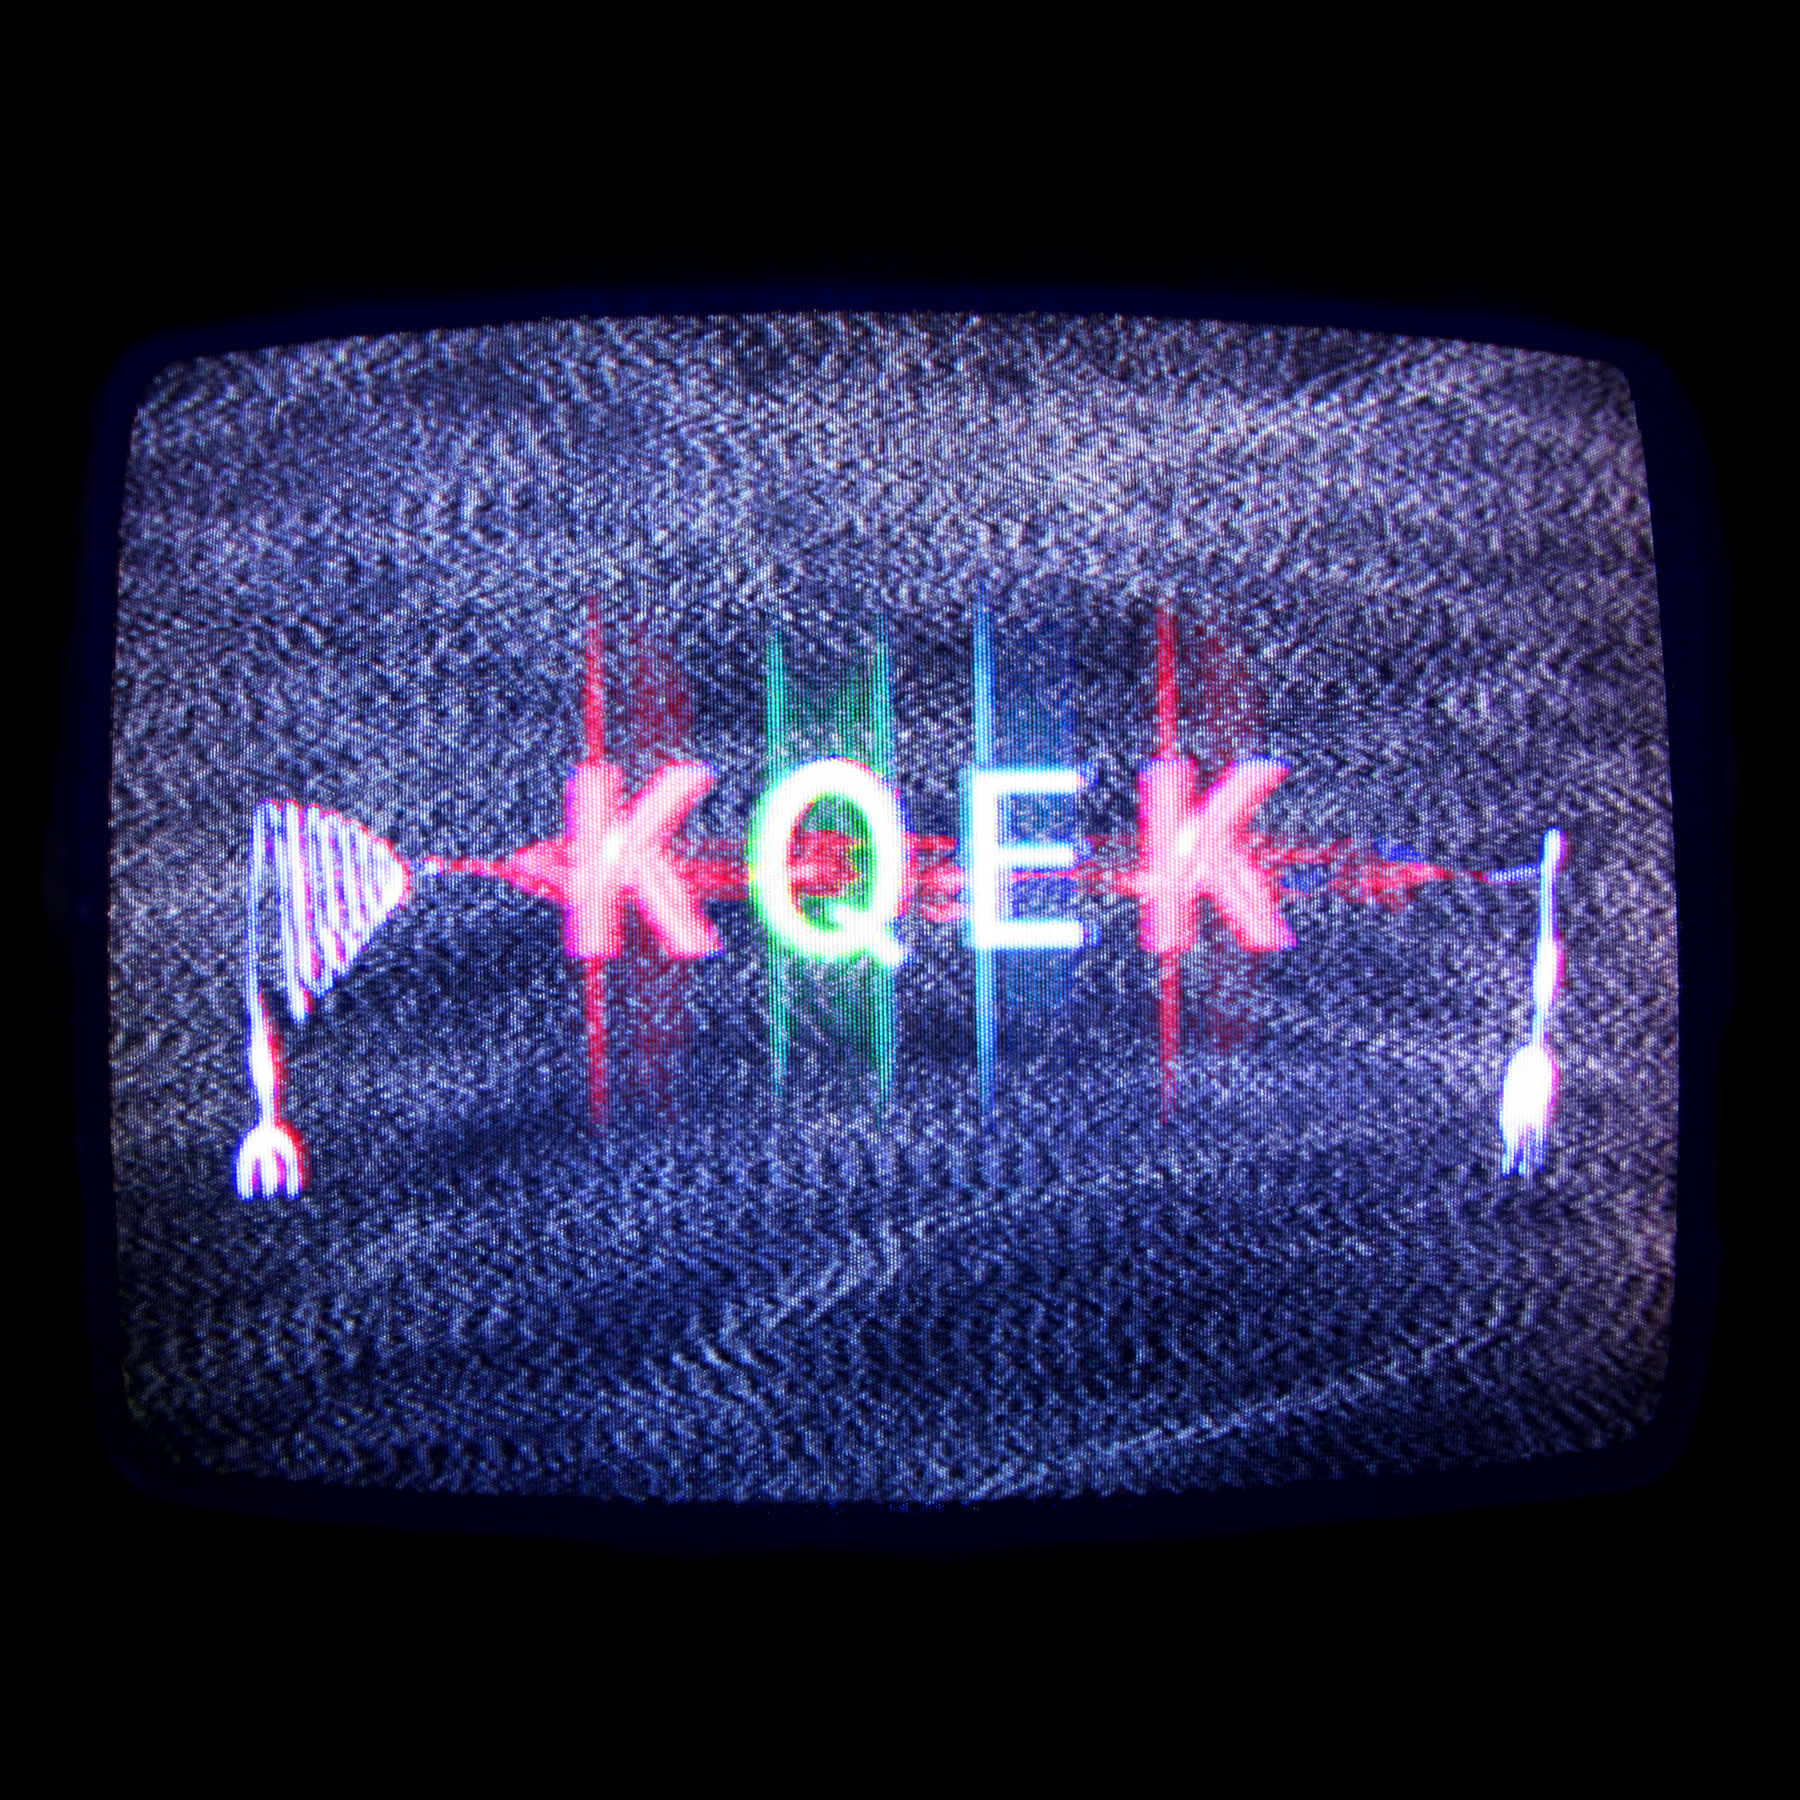 KQEK.com Digital / Big Head Amusements / ArtScopeTO - Podcasts logo